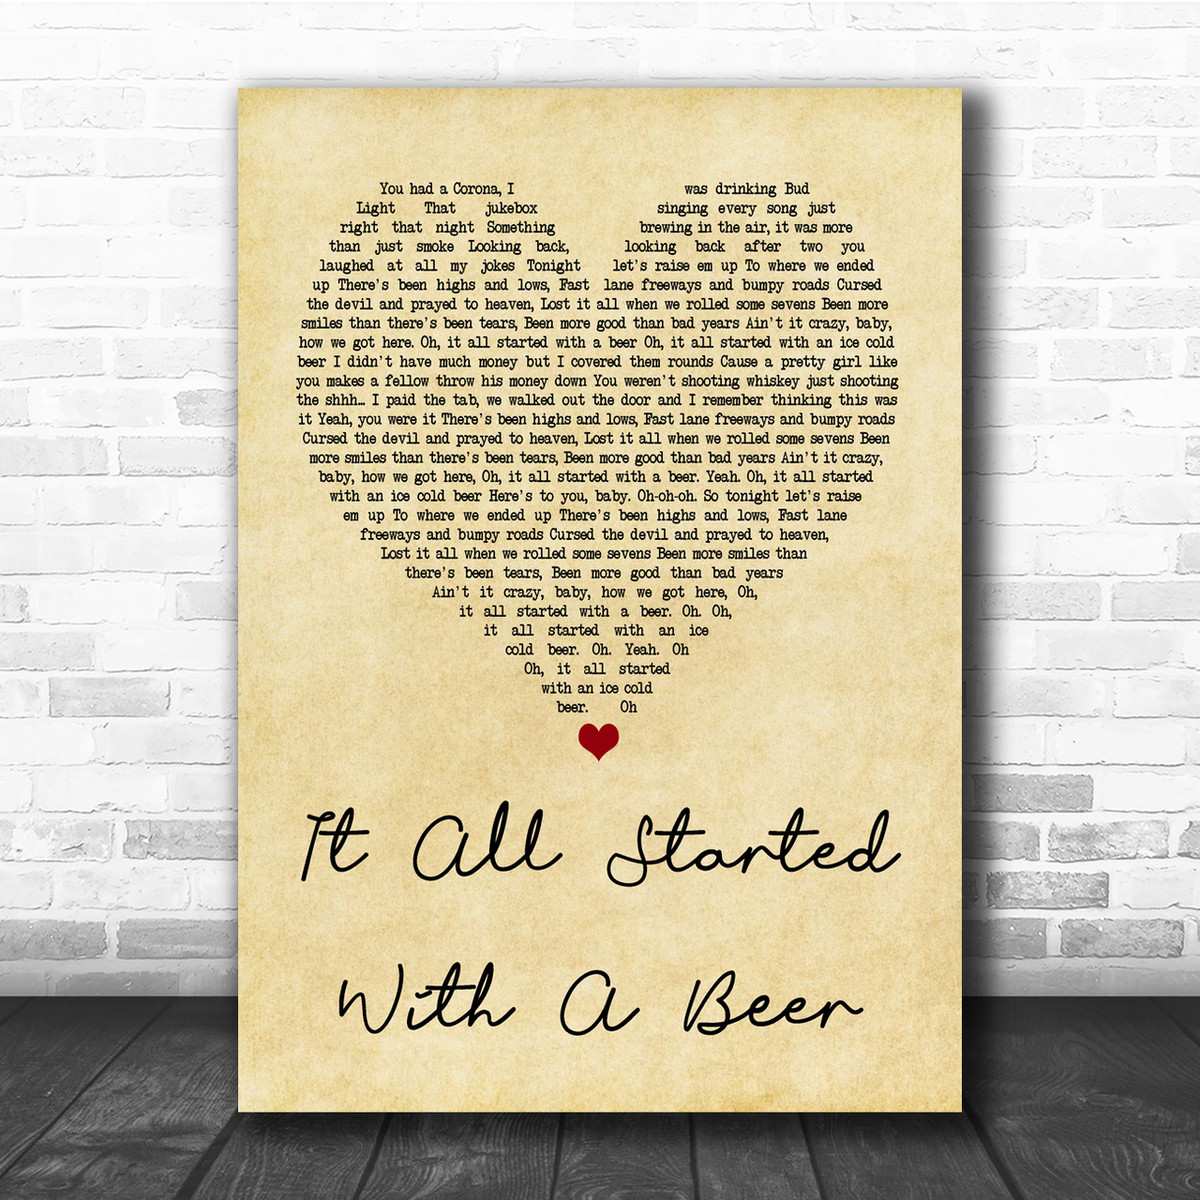 Frankie Ballard It All Started With A Beer Vintage Heart Song Lyric Music  Wall Art Print